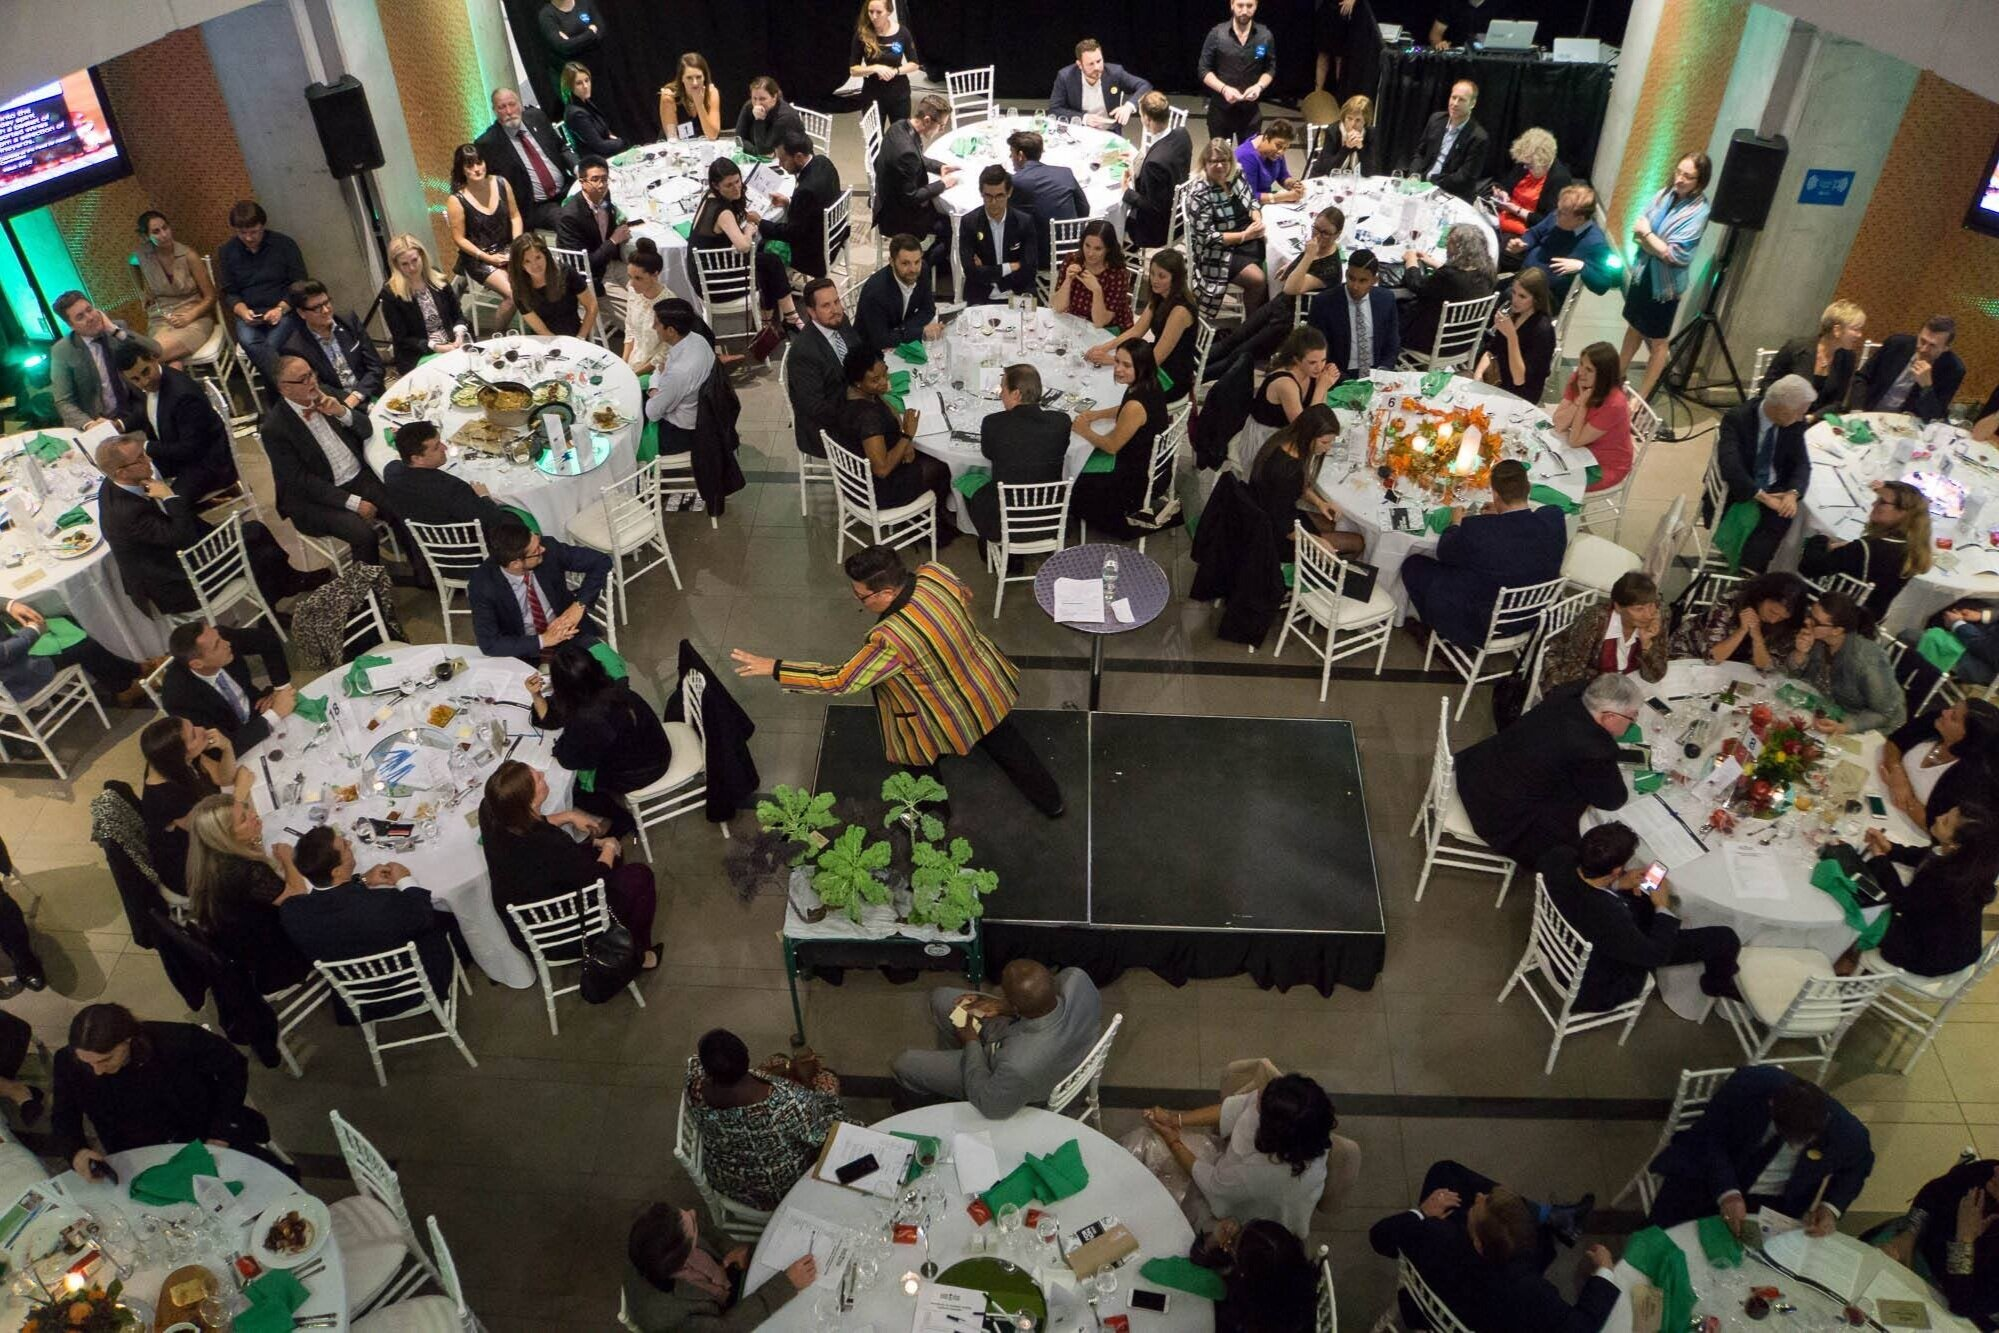 A charity gala taking place in the Atrium Event Space at the Centre for Hospitality & Culinary Arts at George Brown College